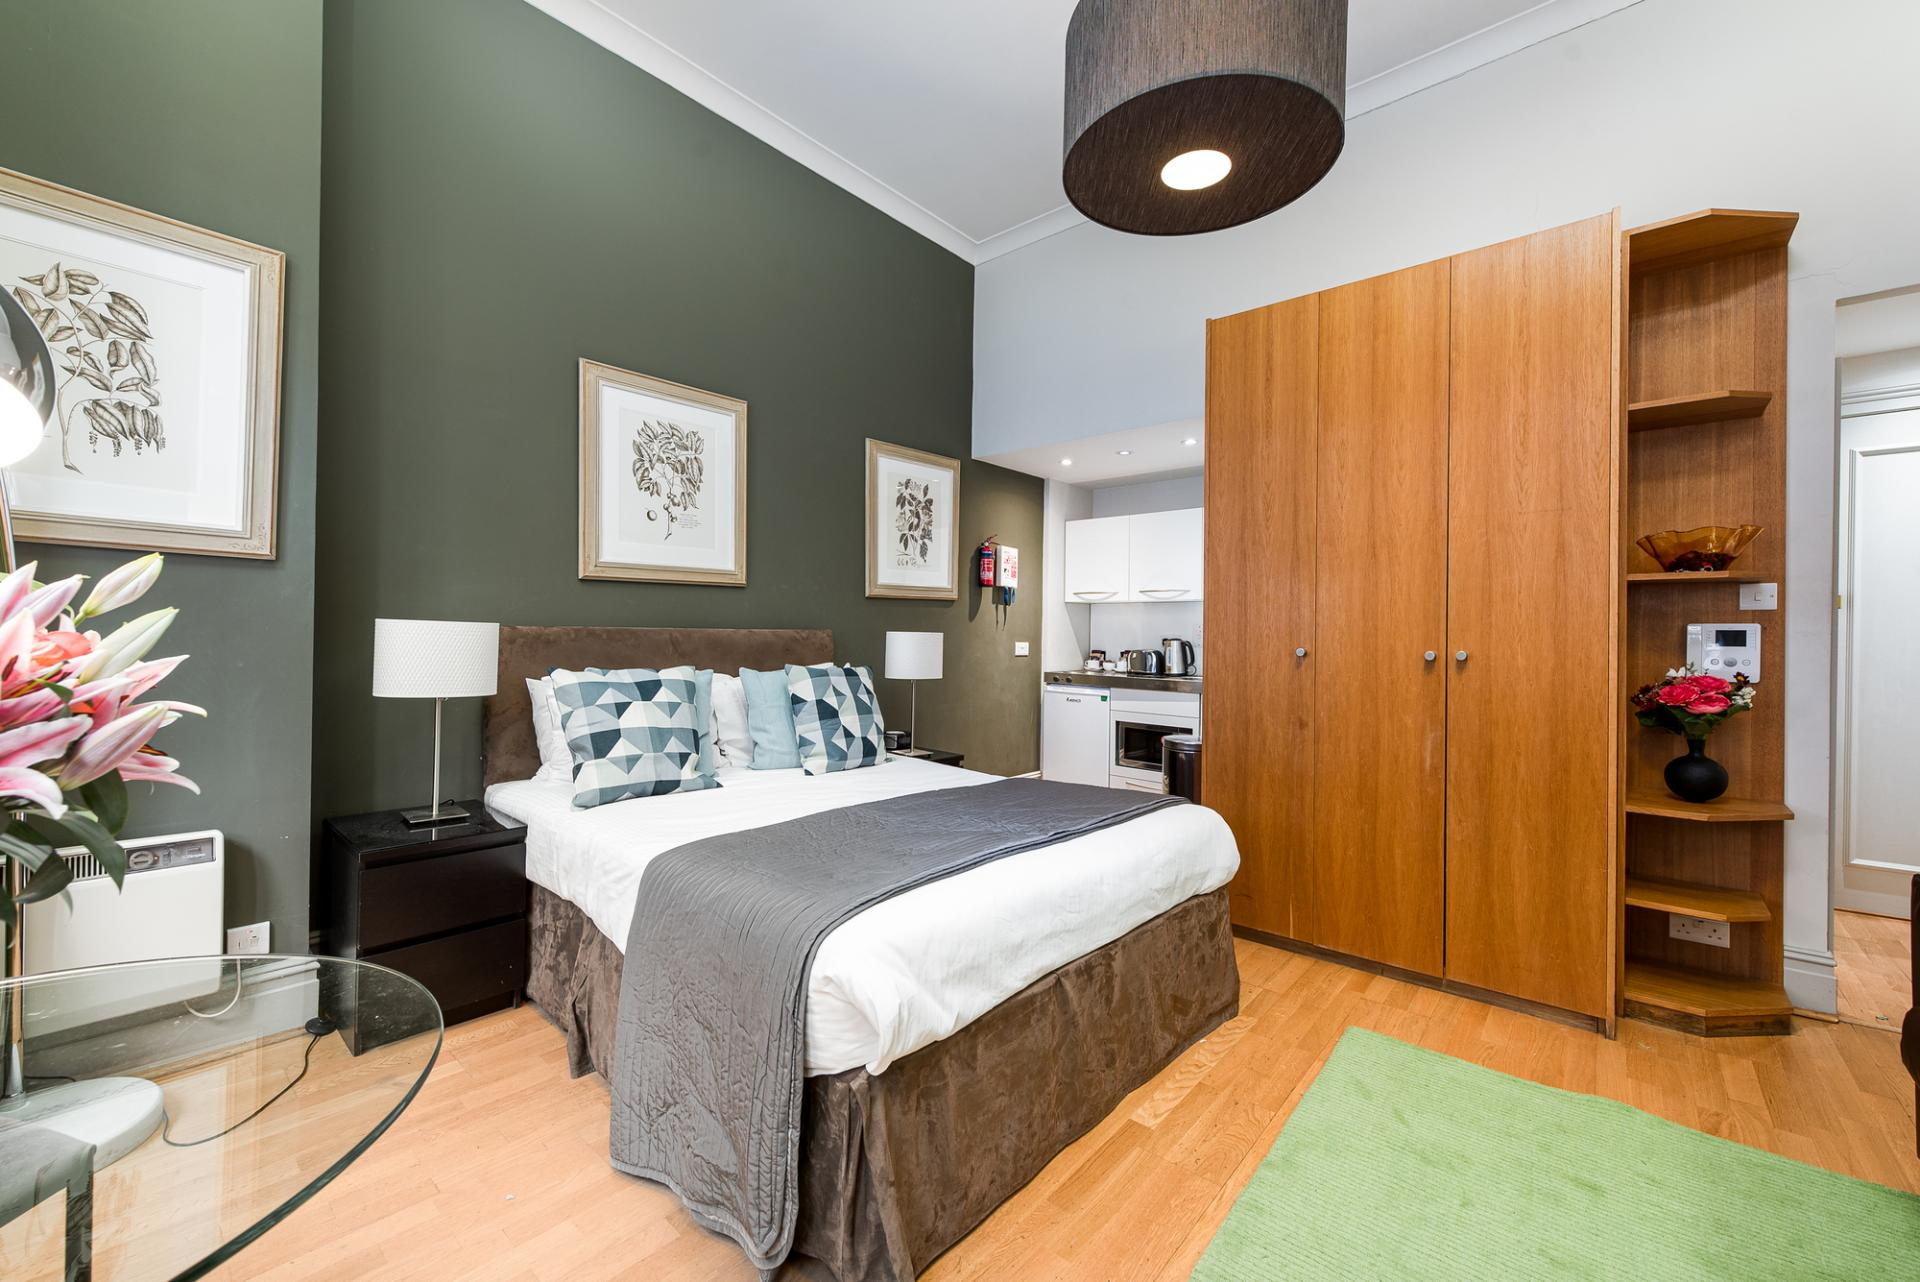 Wardrobe at Draycott Place Serviced Apartments, Chelsea, London - Citybase Apartments